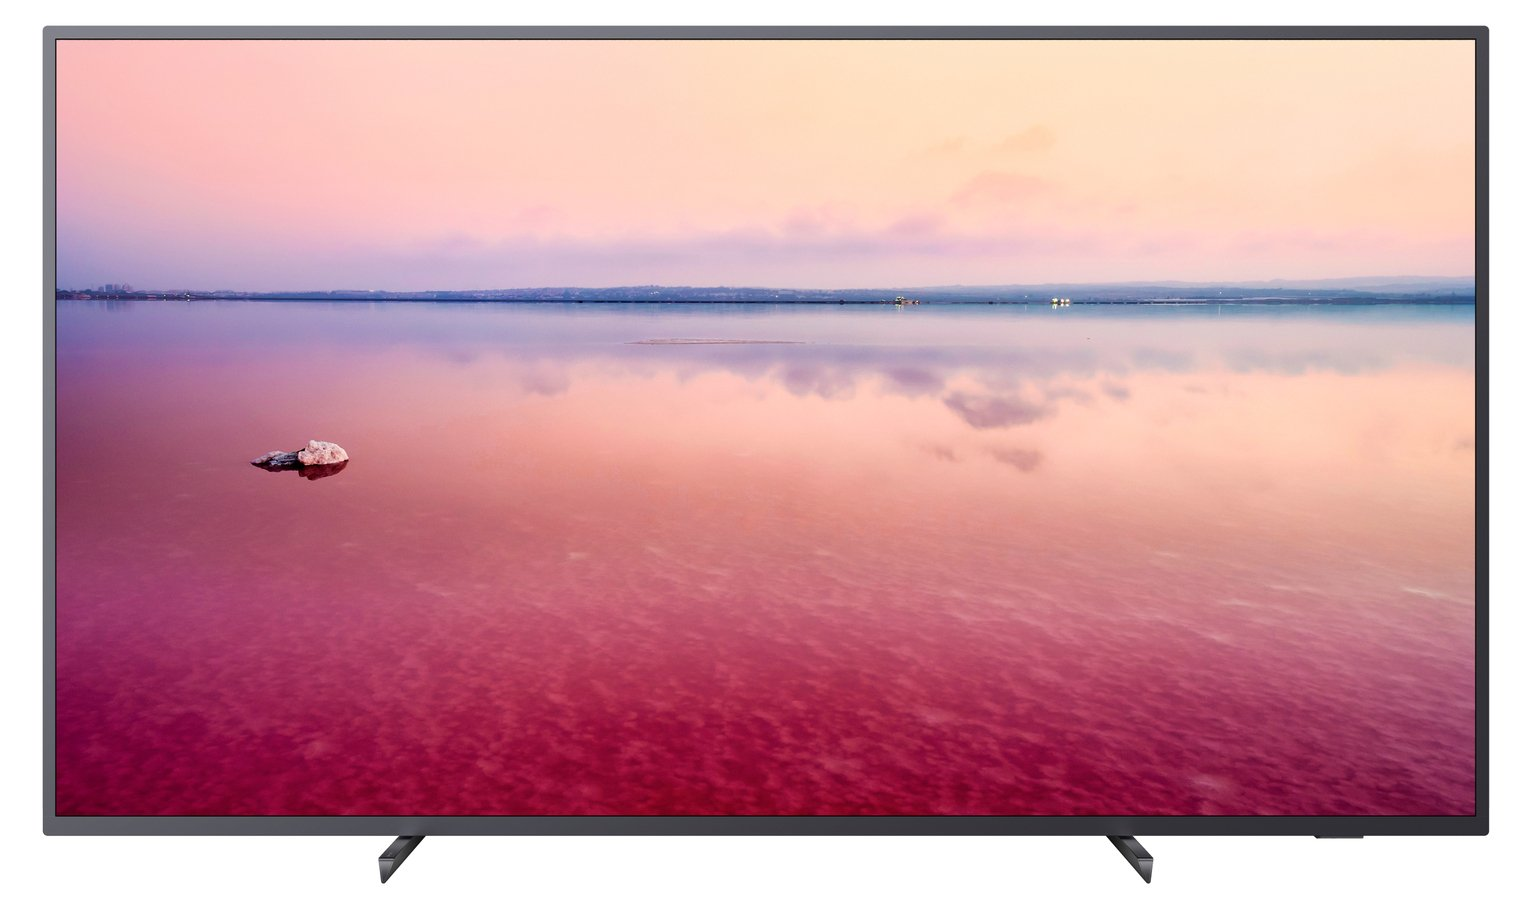 Philips 70 Inch 70PUS6704 Smart 4K HDR LED TV